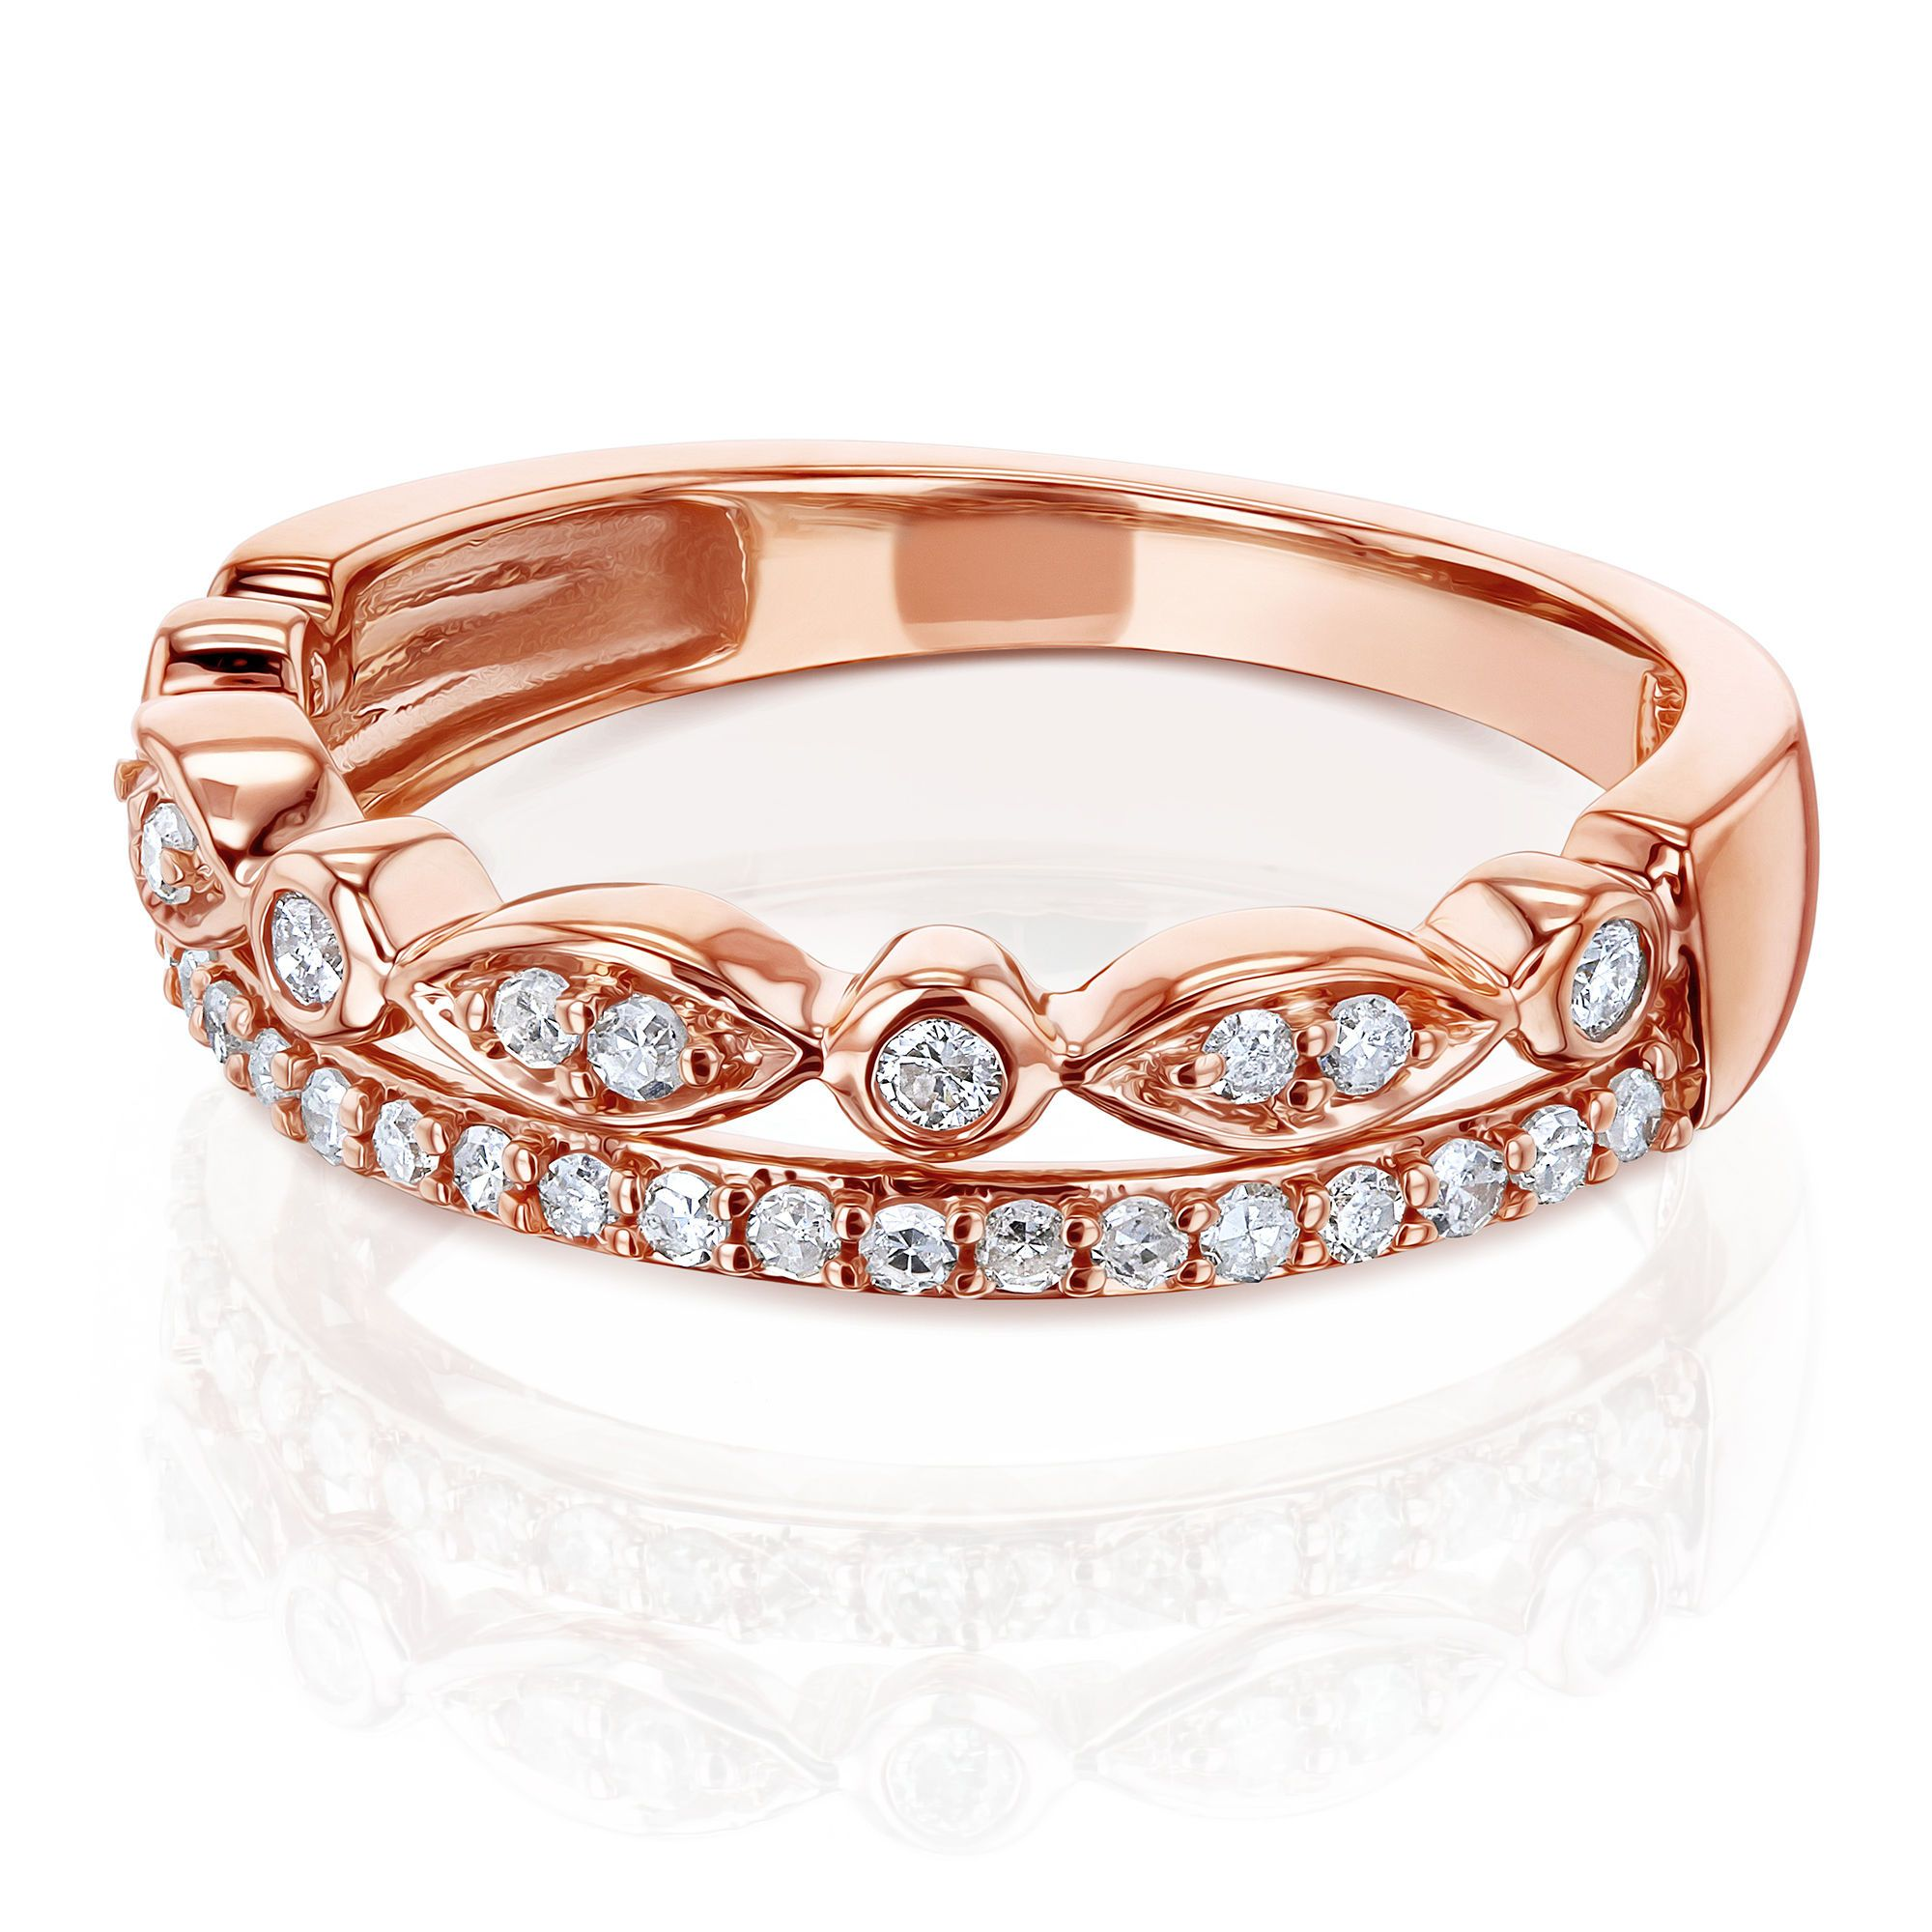 Mixed Set Double Row Diamond Band 10k Rose Gold Diamond Bands Double Diamond Band Jewelry